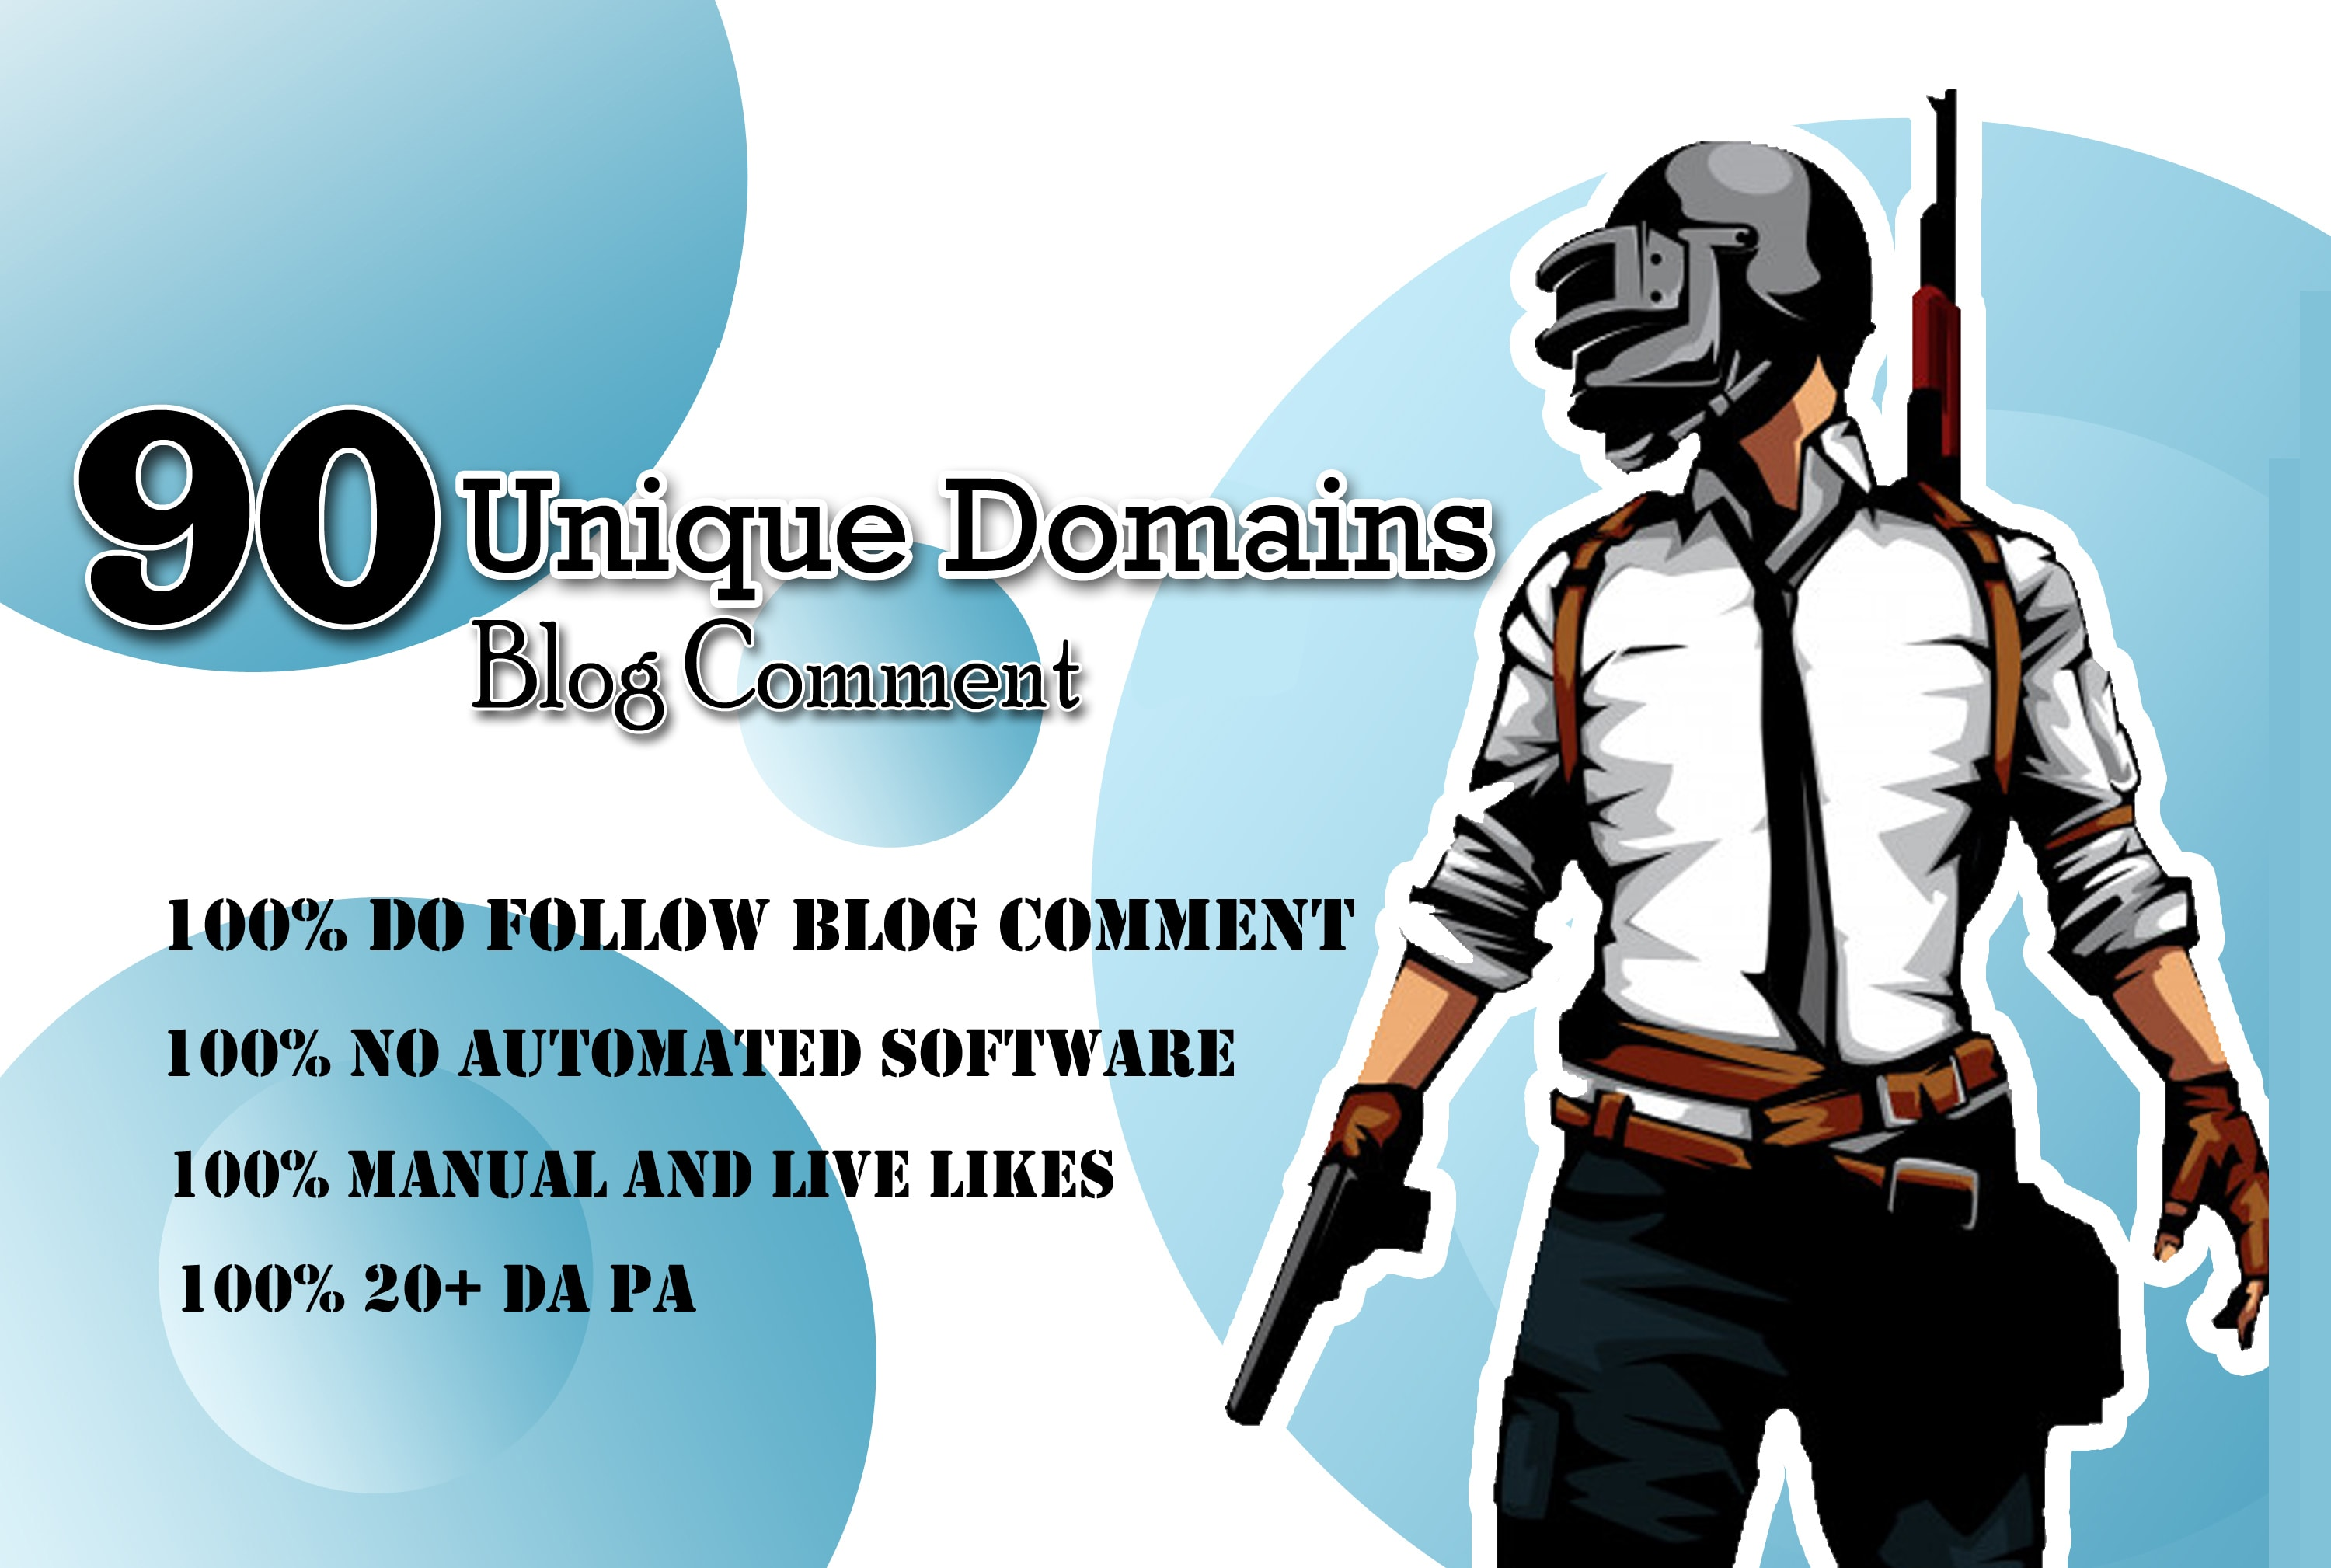 I will 90 unique domains SEO service blog comments backlinks